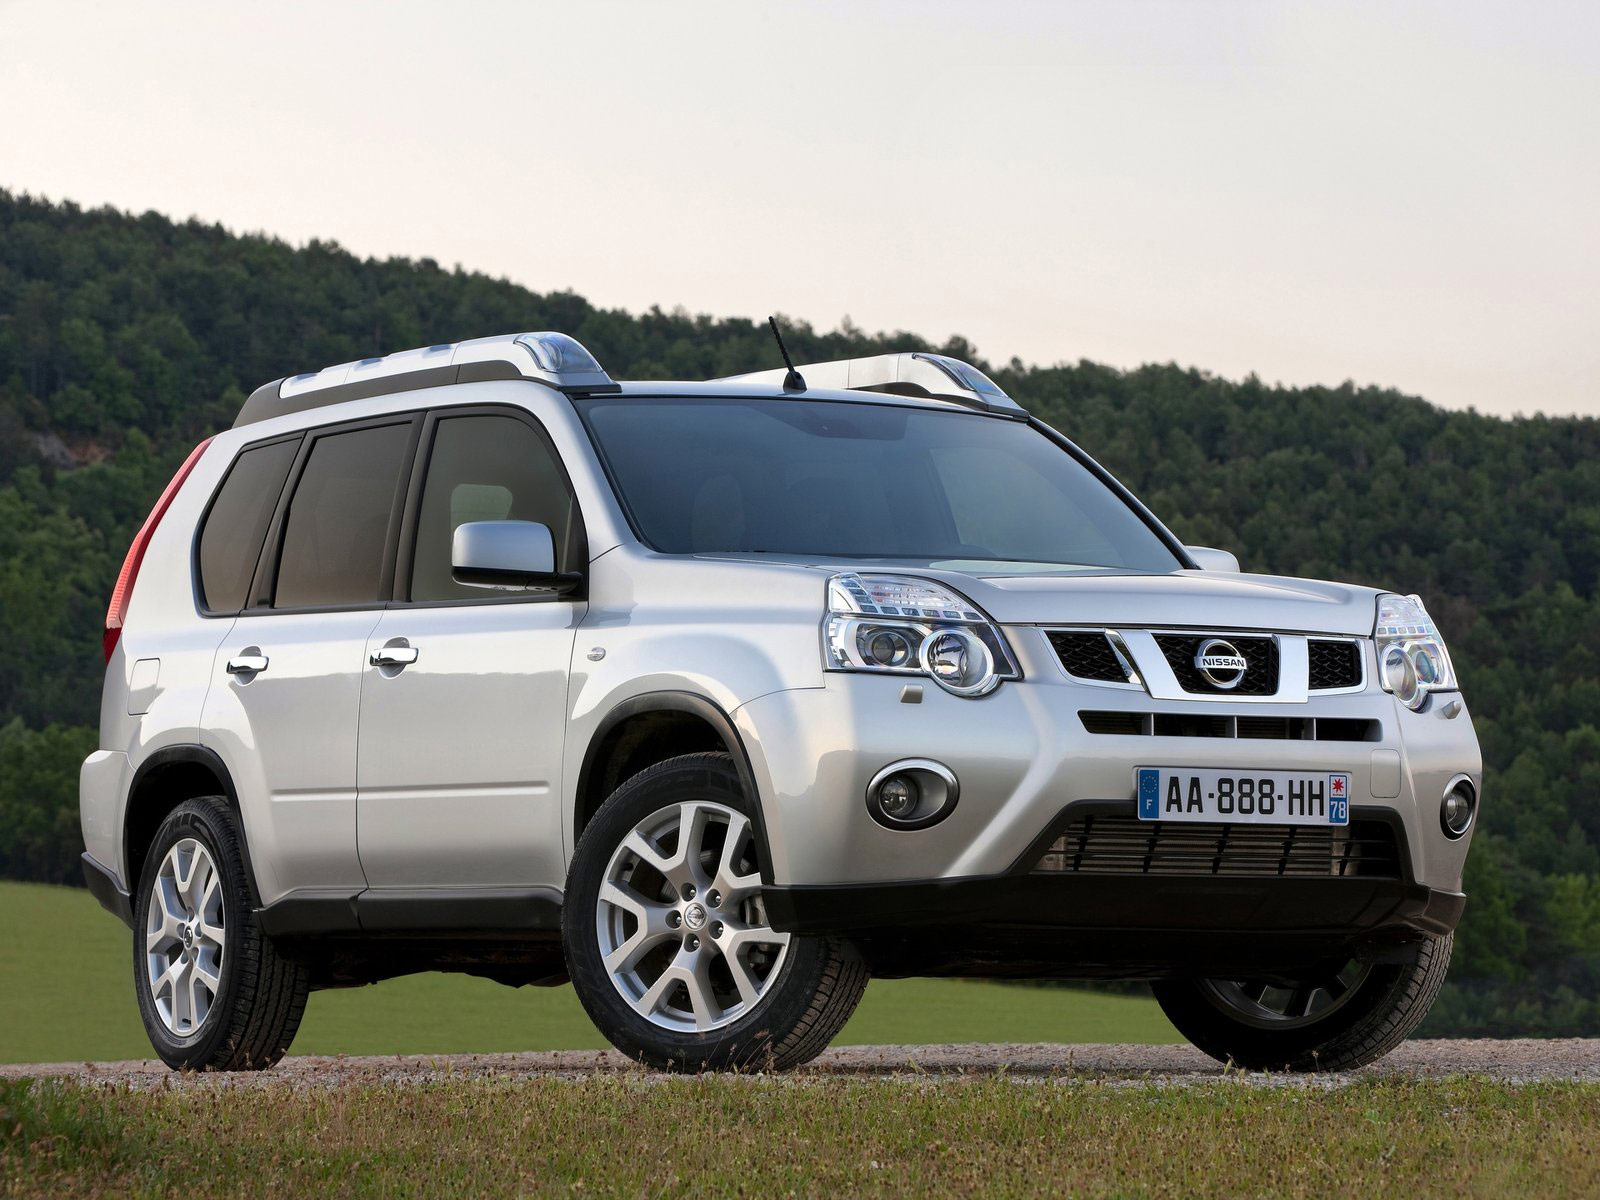 2011 NISSAN X-Trail Car Photos, Accident Lawyers Information